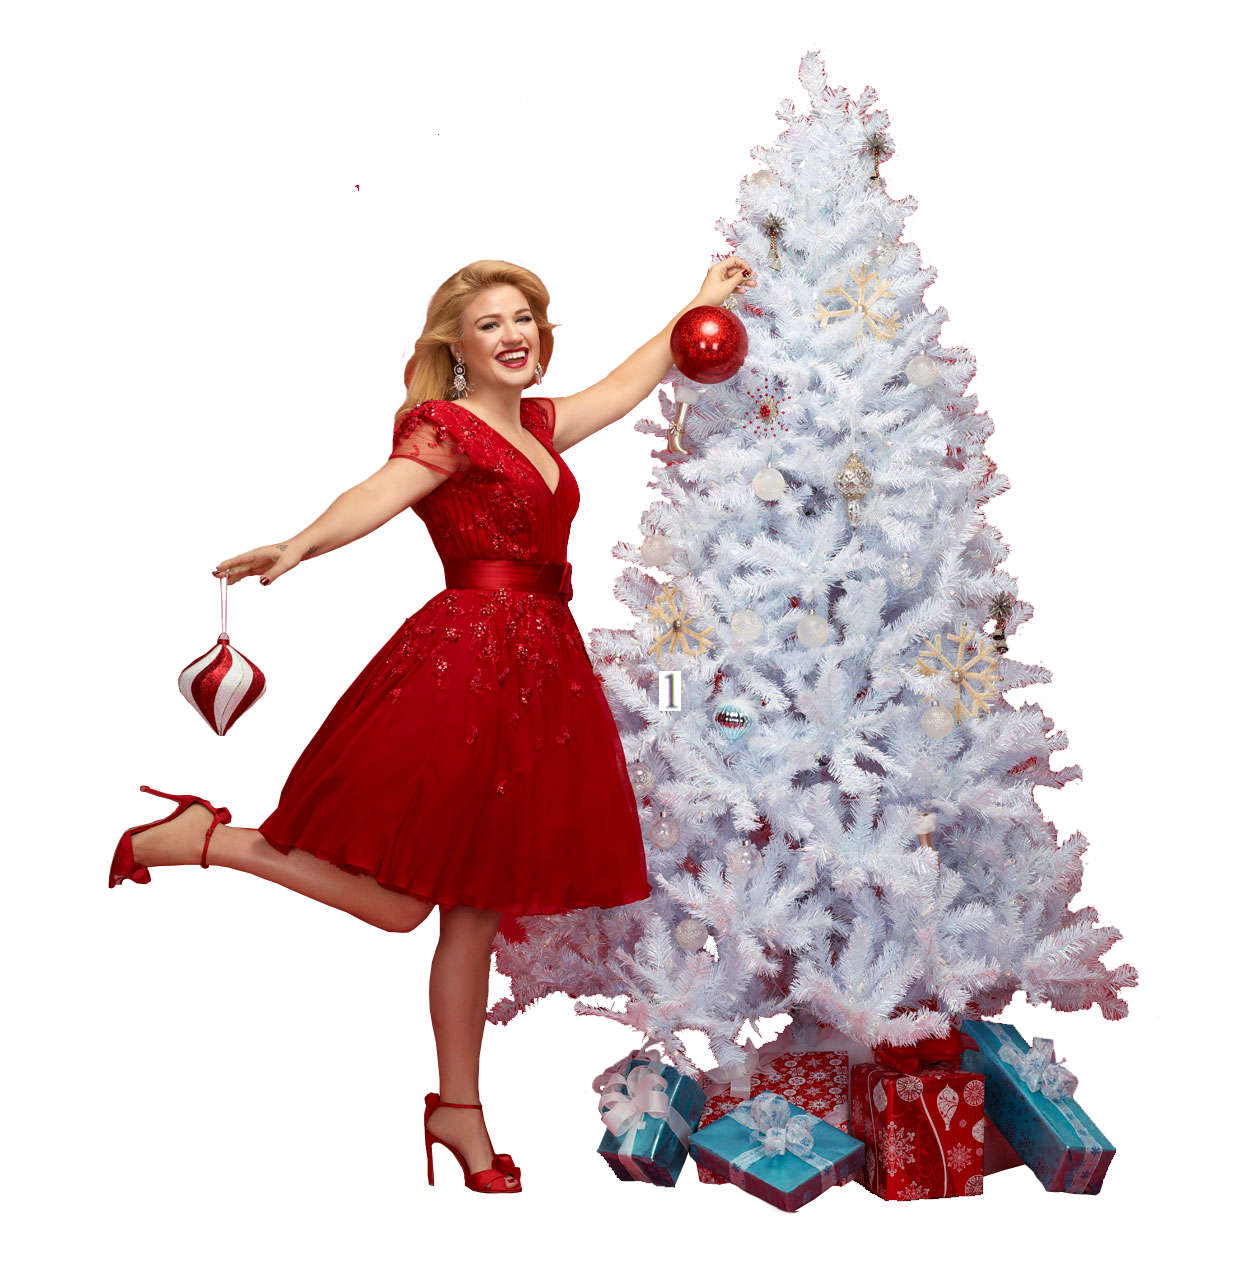 Download Kelly Clarkson Clipart HQ PNG Image.